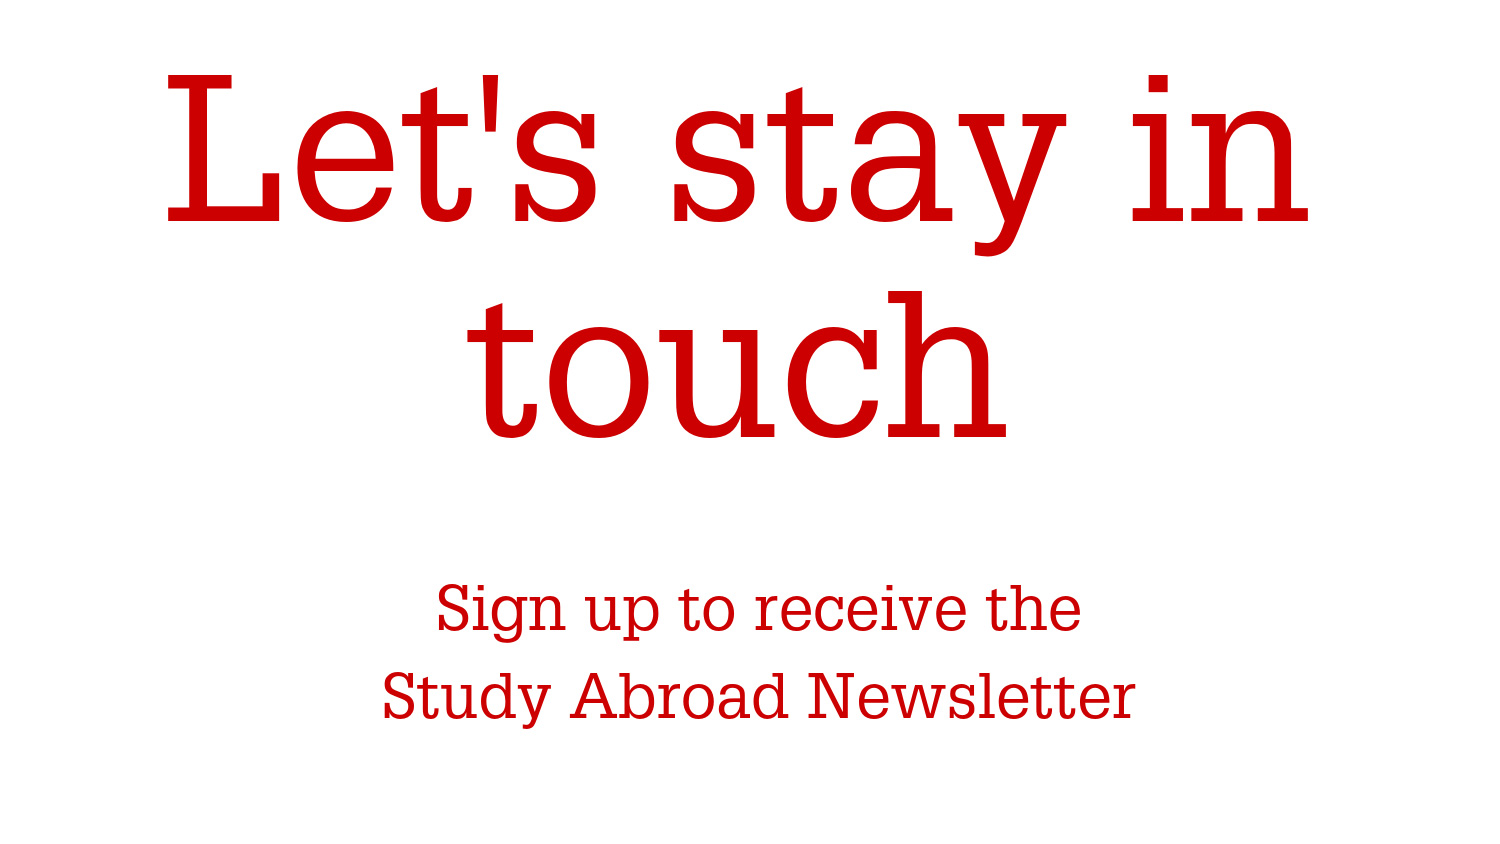 Infographic asking users to receive the Study Abroad Newsletter